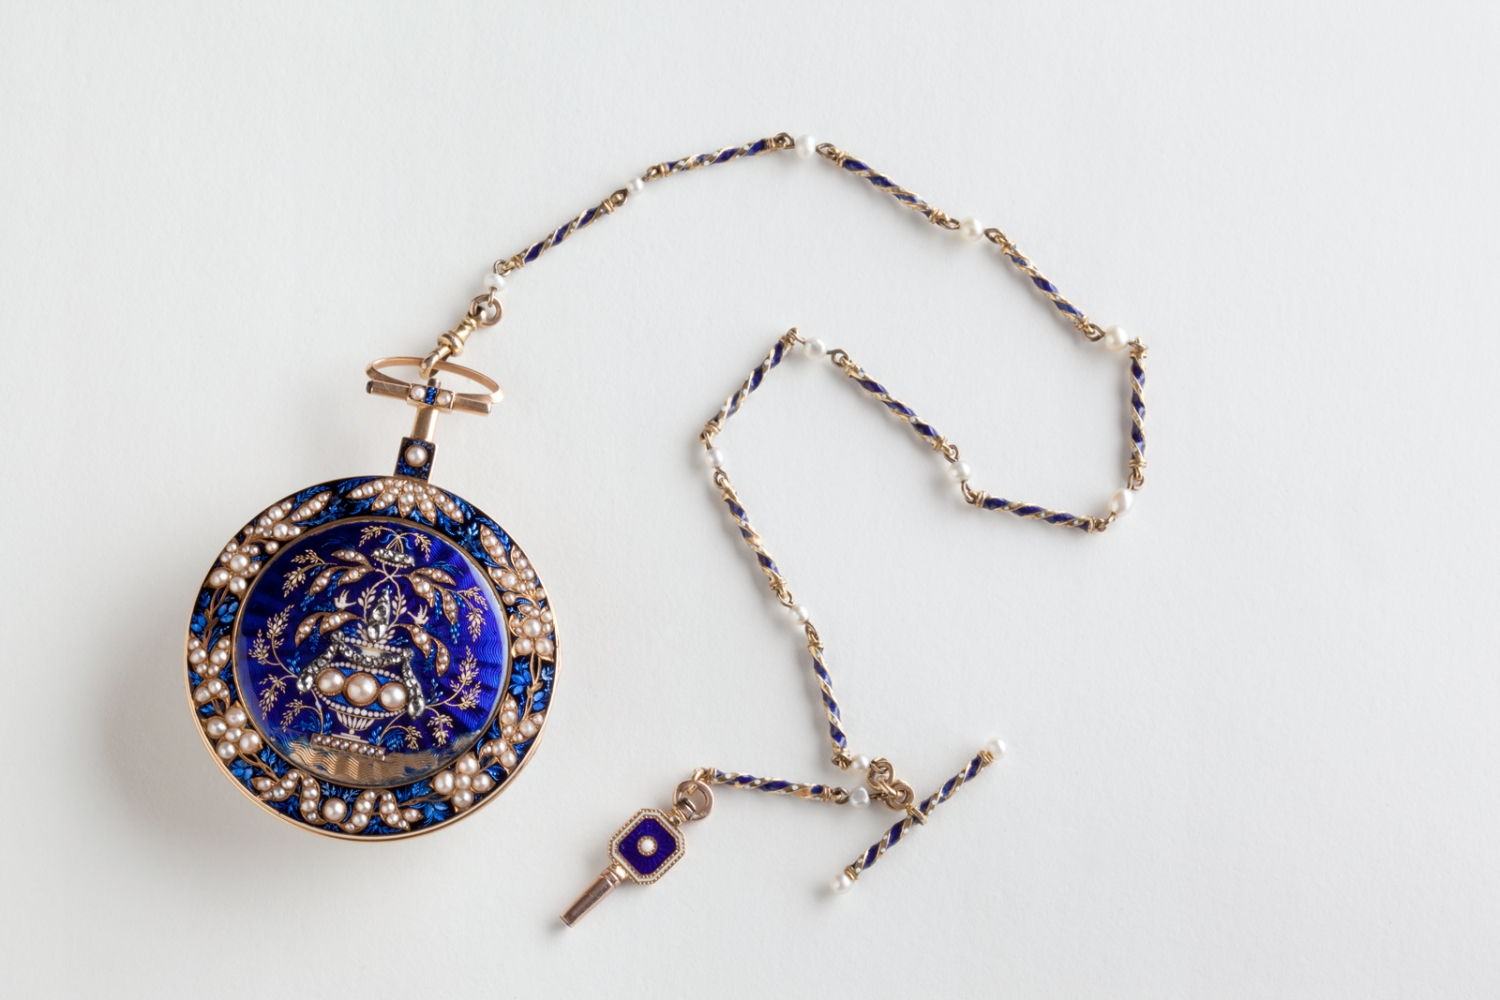 Back of pocket watch set with half pearls and rose cut diamonds on blue enamel ground, circa 1816